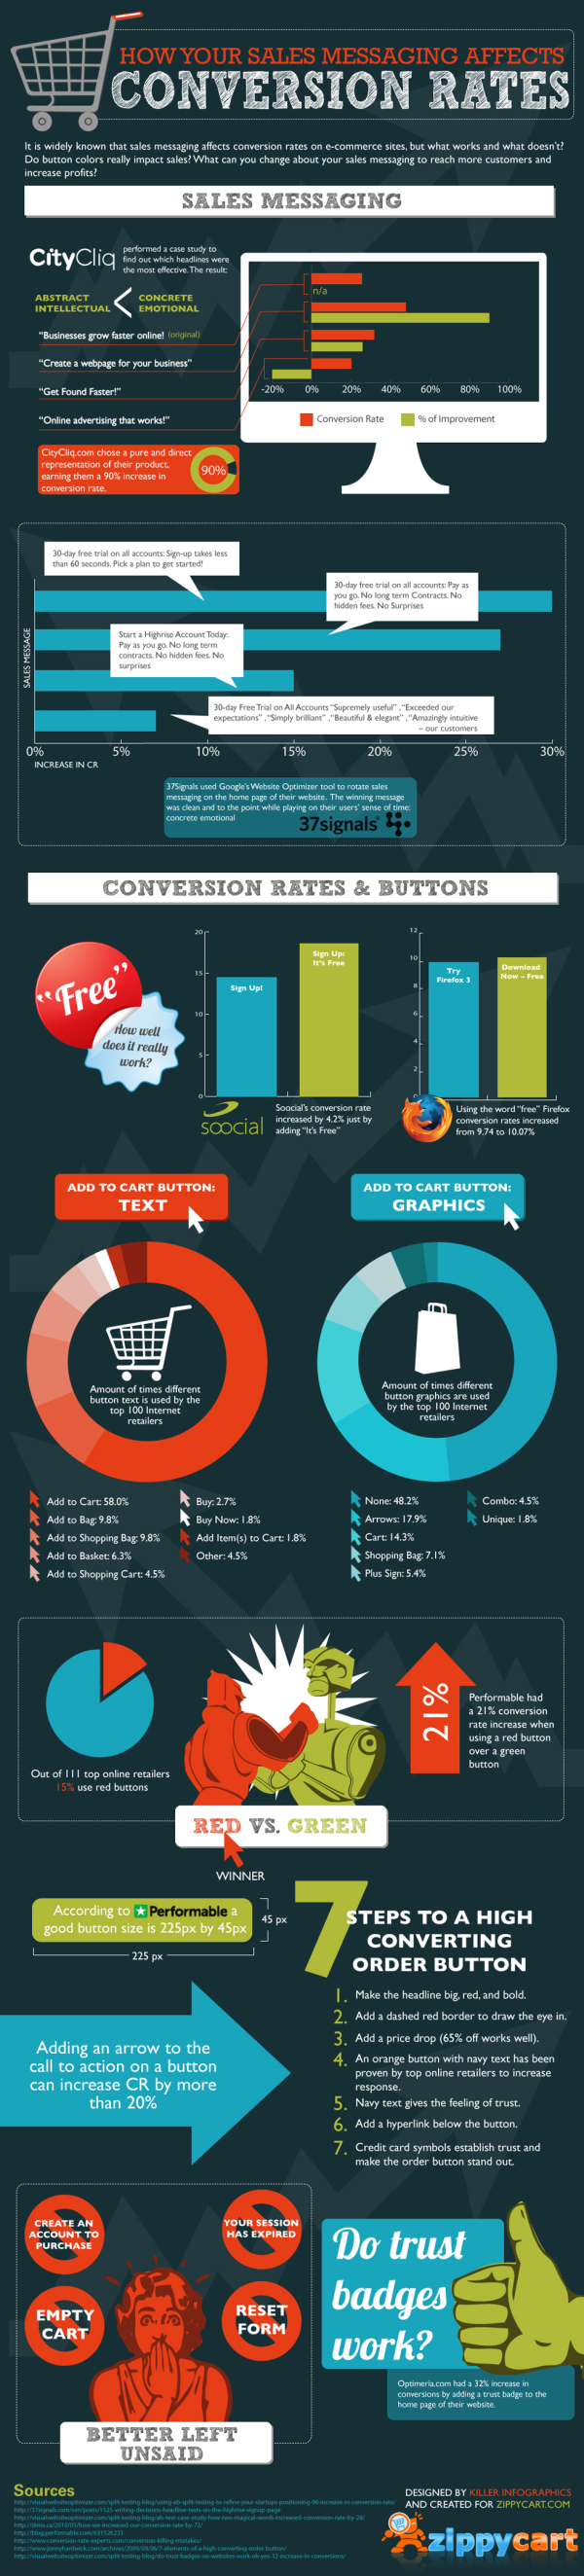 Sales Messaging%27s Affect on Conversion Rates resized 600